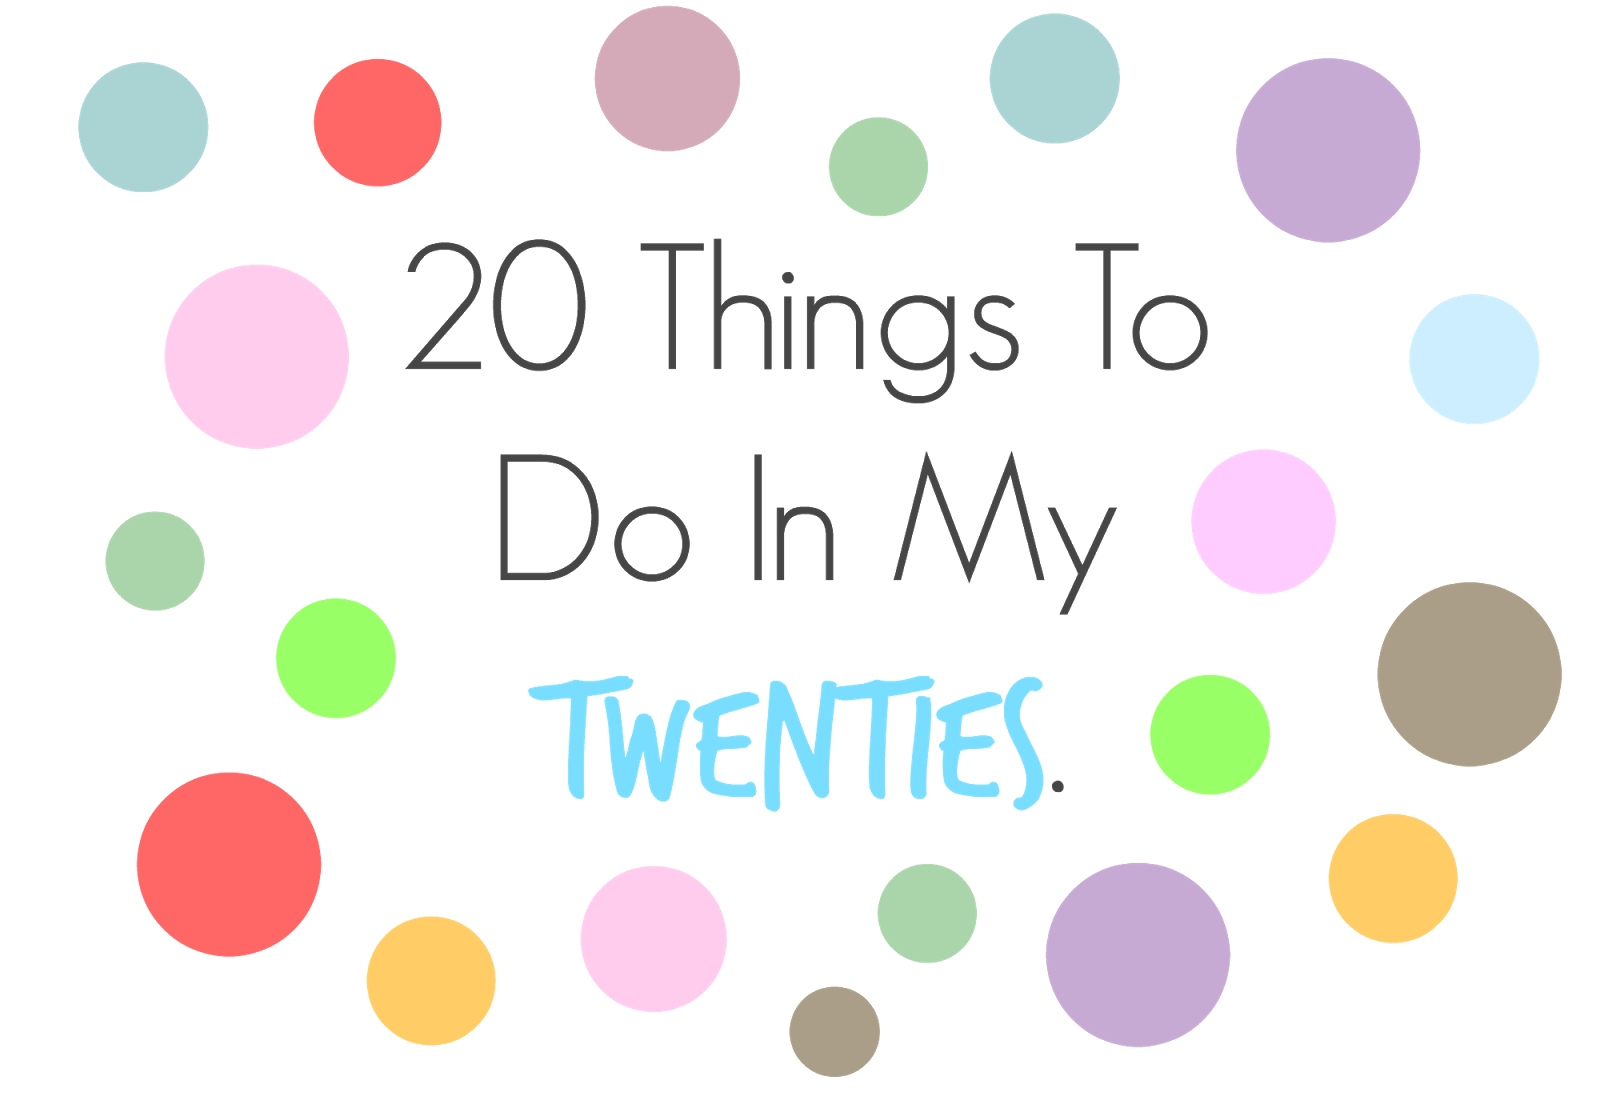 letmecrossover_blog_michele_mattos_things_to_do_twenties